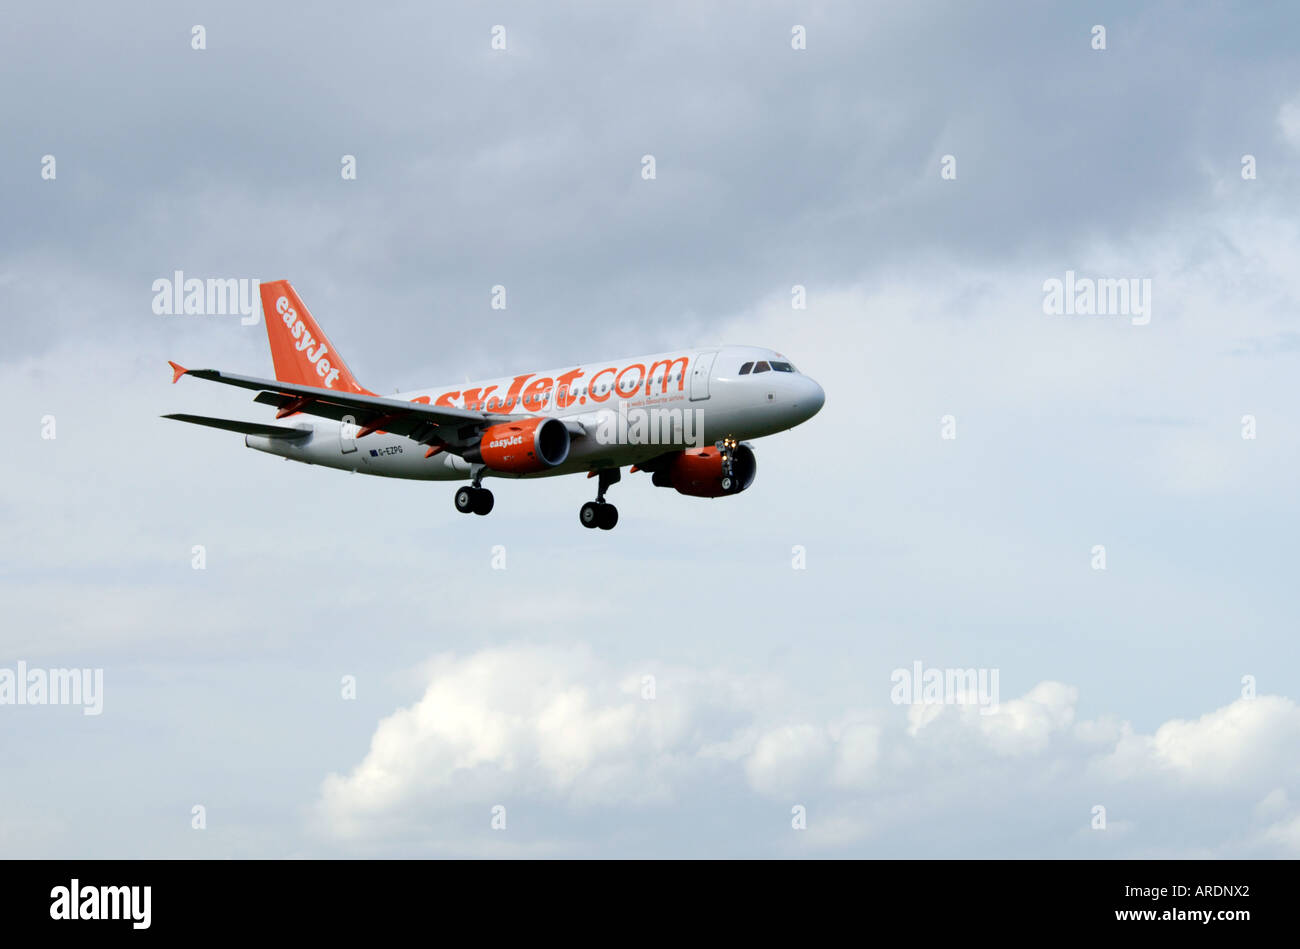 Easy Jet 737-700 London flight arriving at Inverness Airport.  XAV 3576-347 - Stock Image